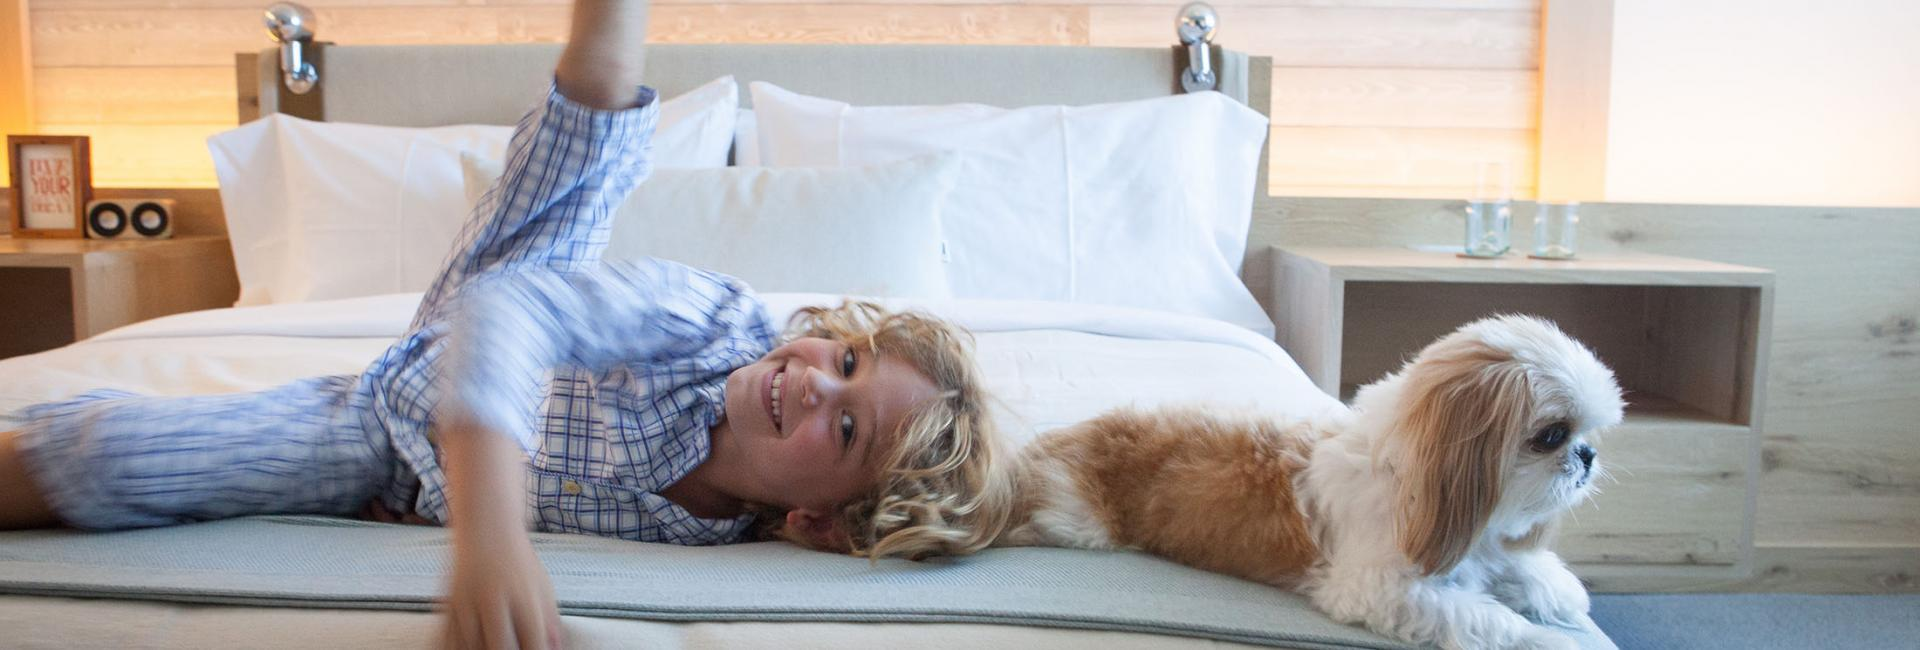 A little boy playing on a bed with a small dog